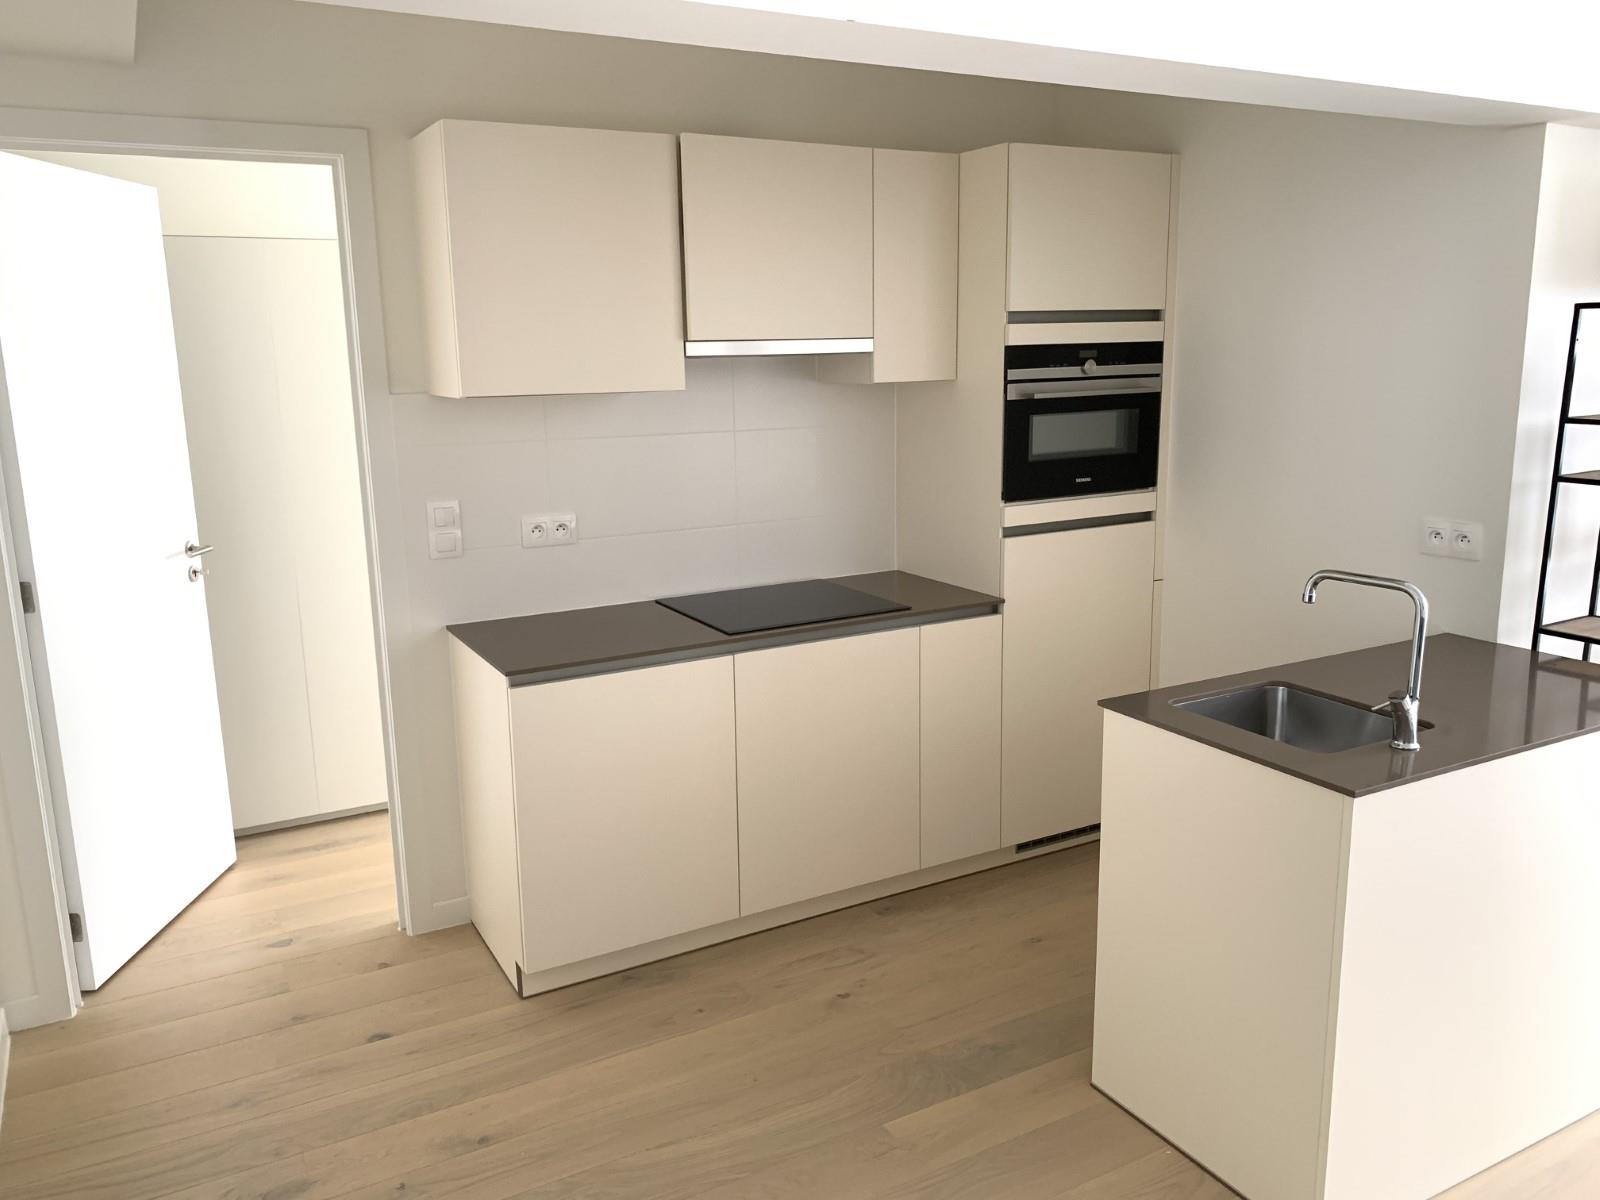 Appartement exceptionnel - Schaerbeek - #3827635-2